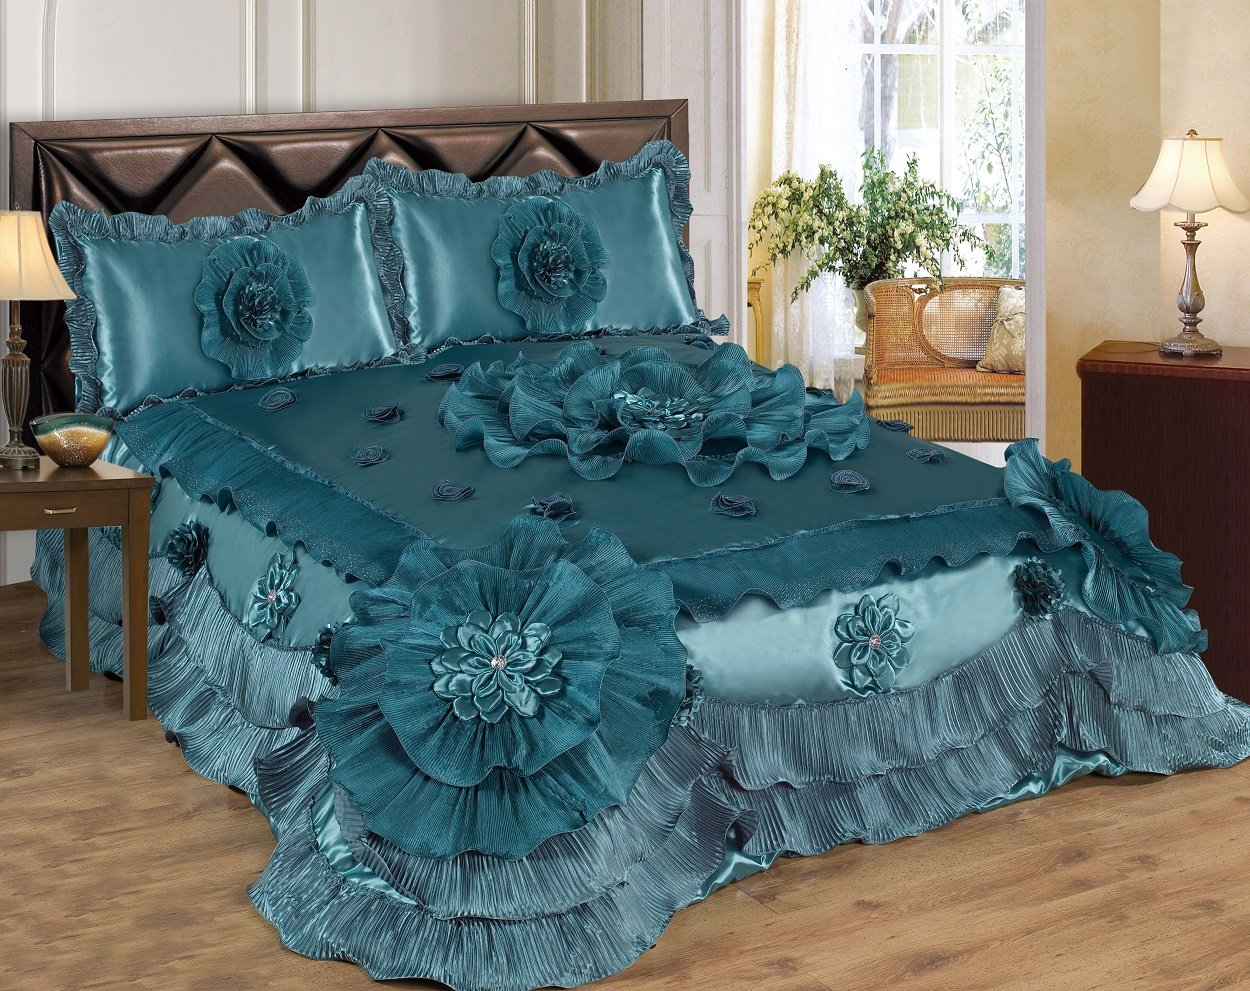 unique class sets comforters images comforter shocking queen bedroom inspirations touch bedding oversized of